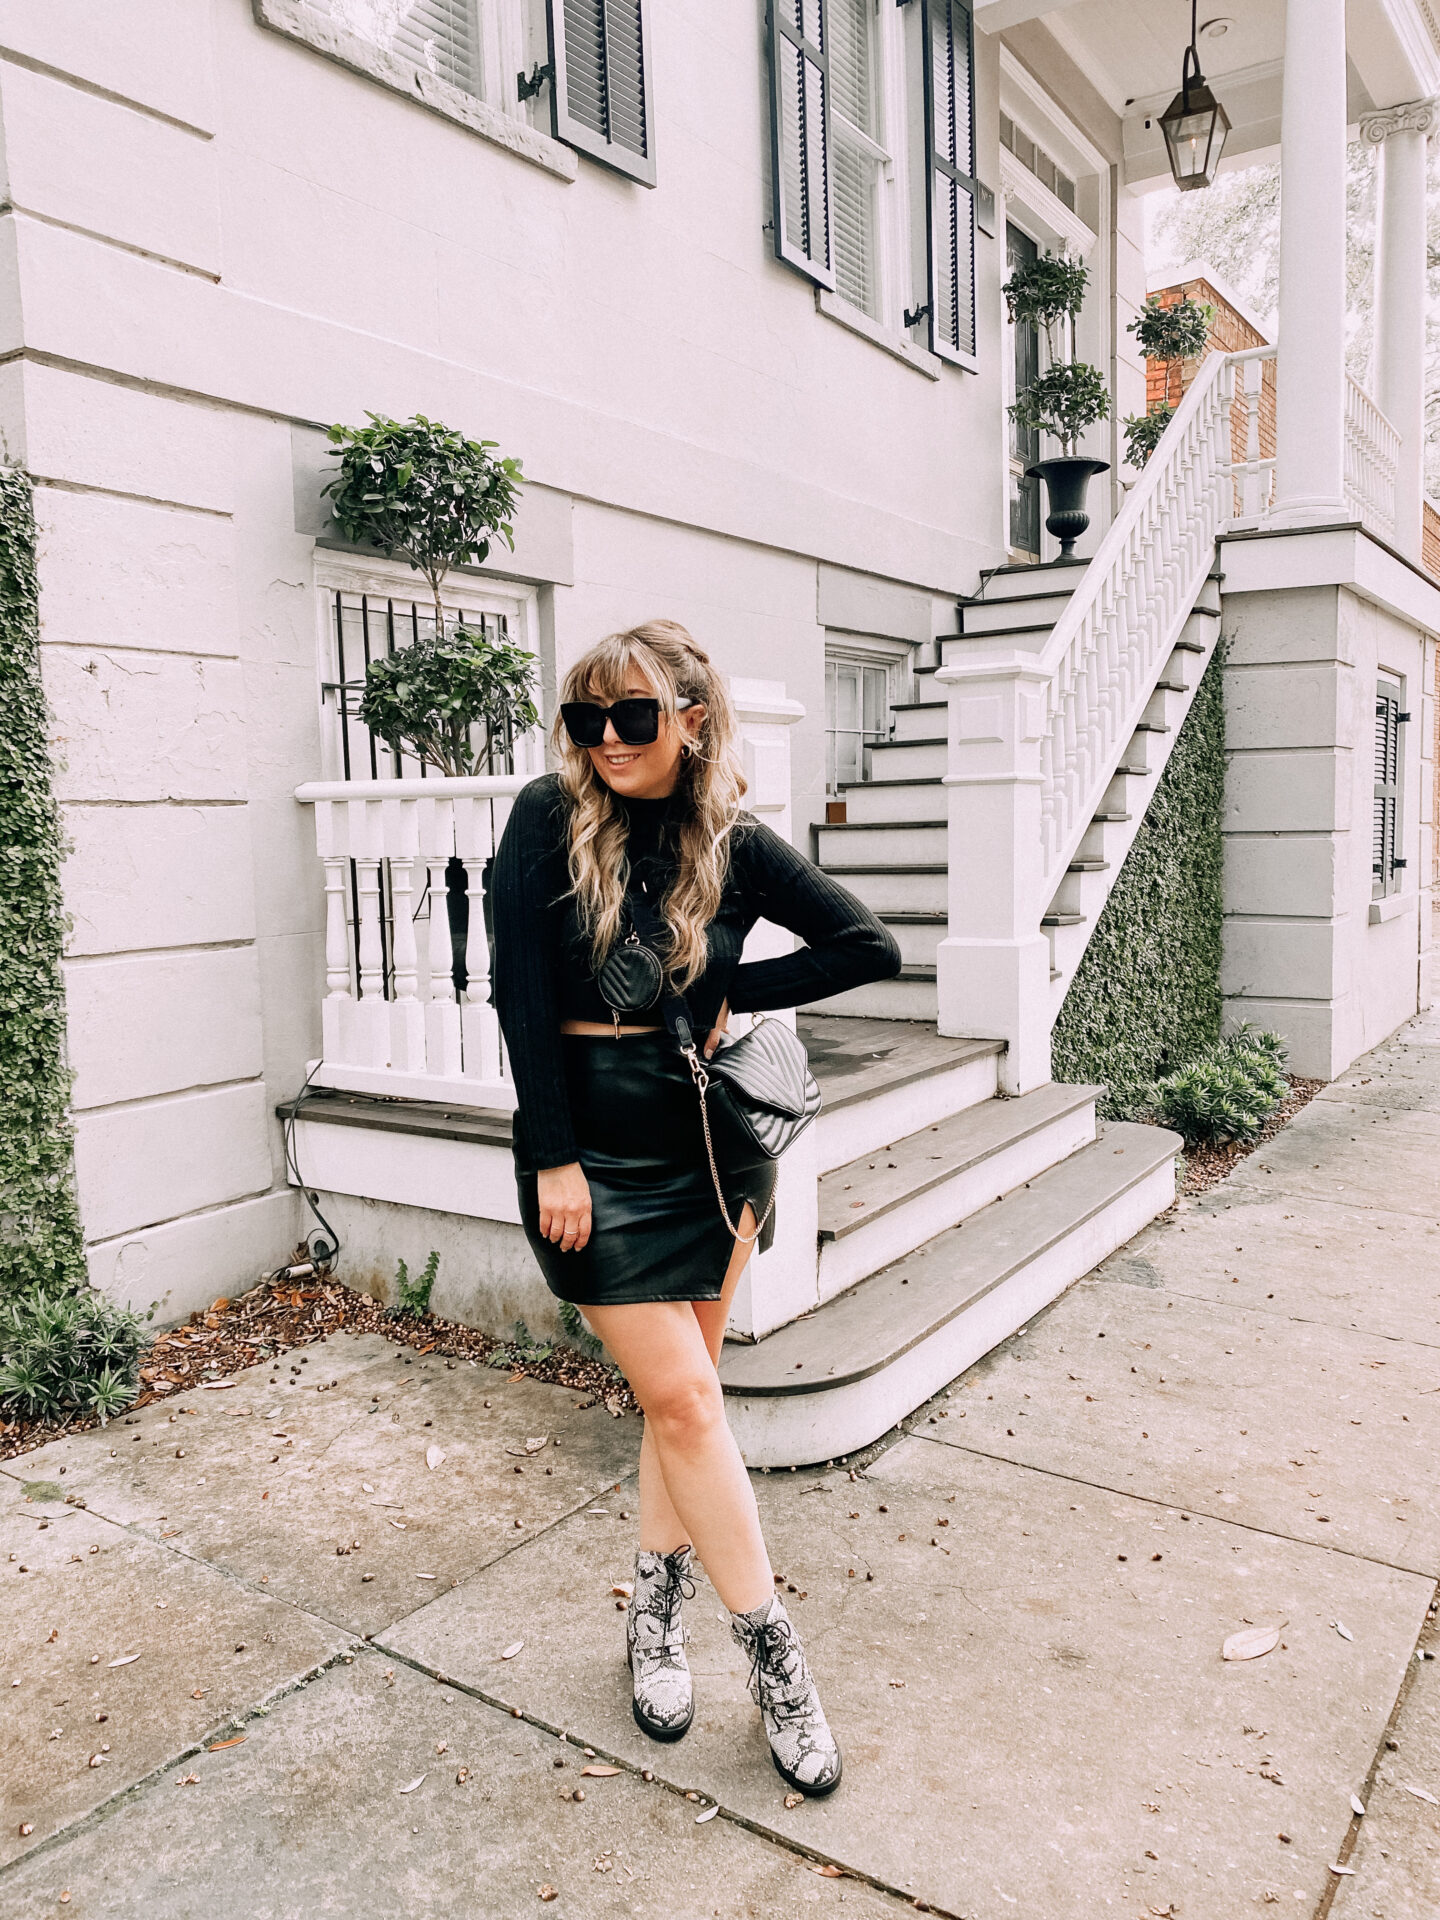 Fall Outfit. – Monochromatic black cropped turtlenecka nd leather skirt